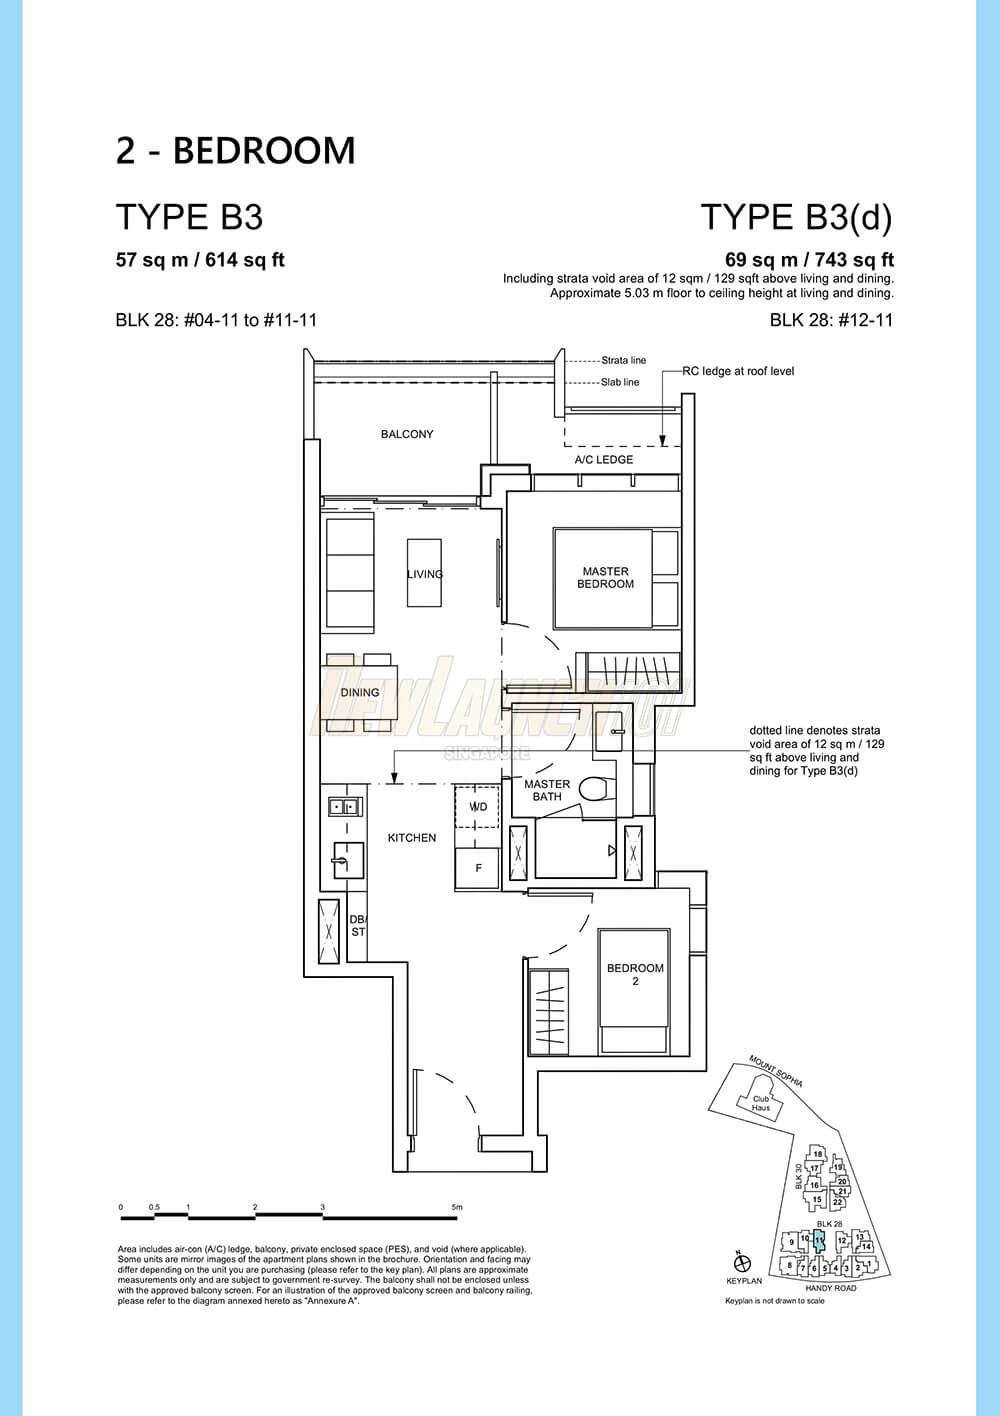 Haus on Handy Floor Plan 2-Bedroom Type B3